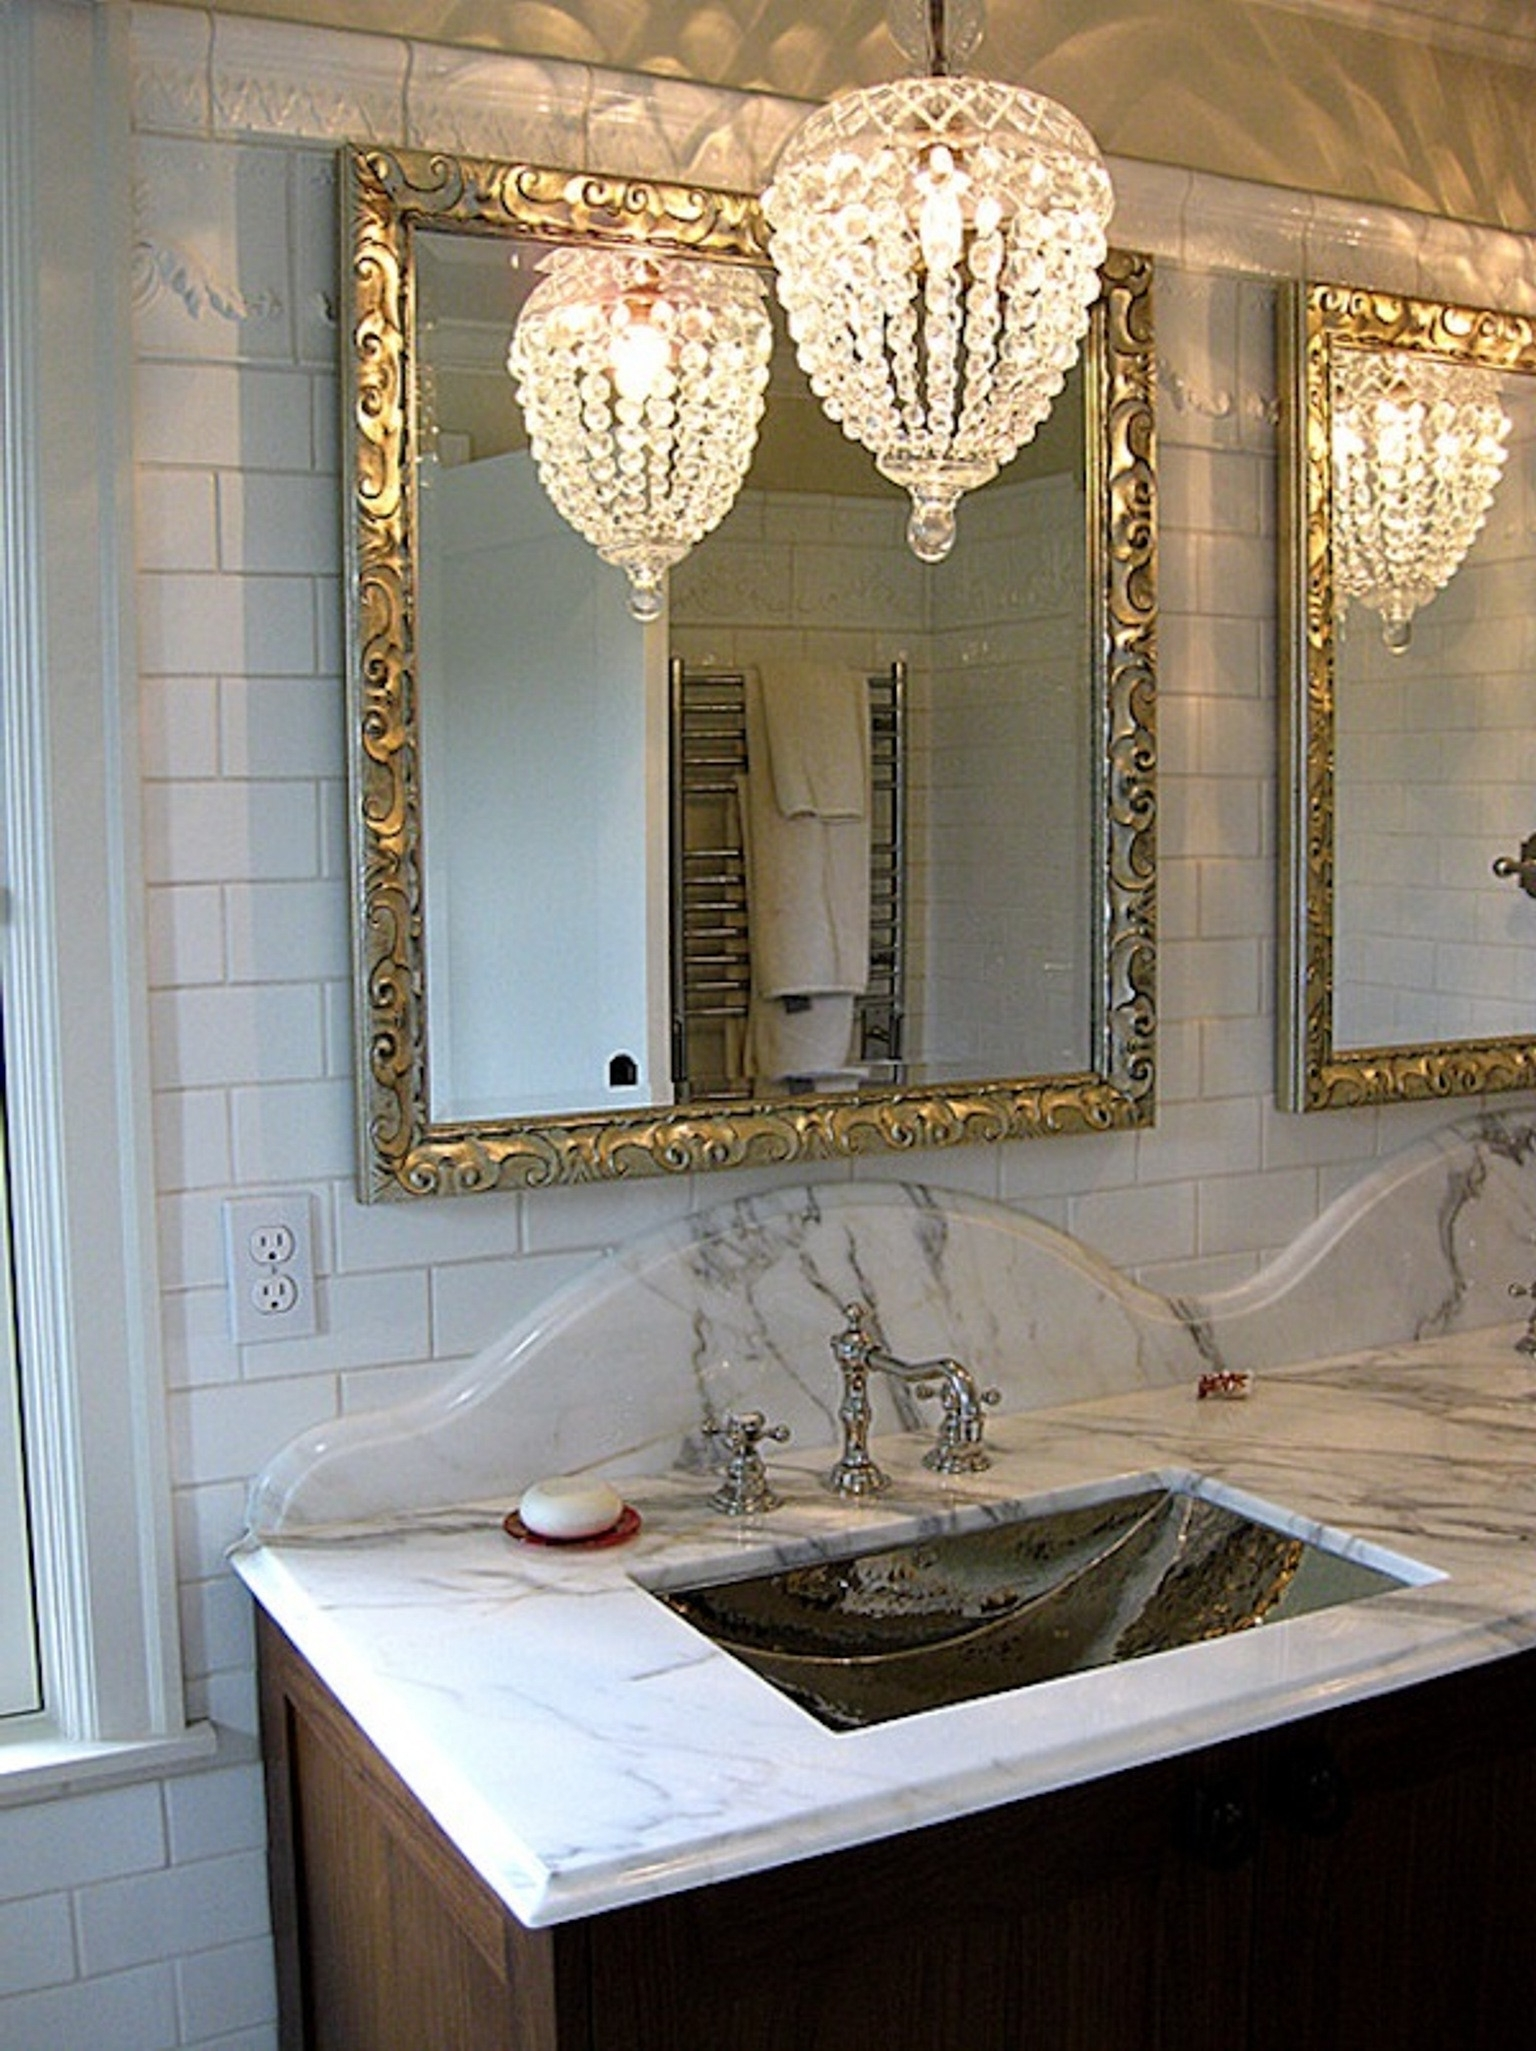 Chandeliers : Bathroom Chandeliers Ideas Elegant Beneficial Bathroom With Current Chandelier Bathroom Lighting Fixtures (View 8 of 20)